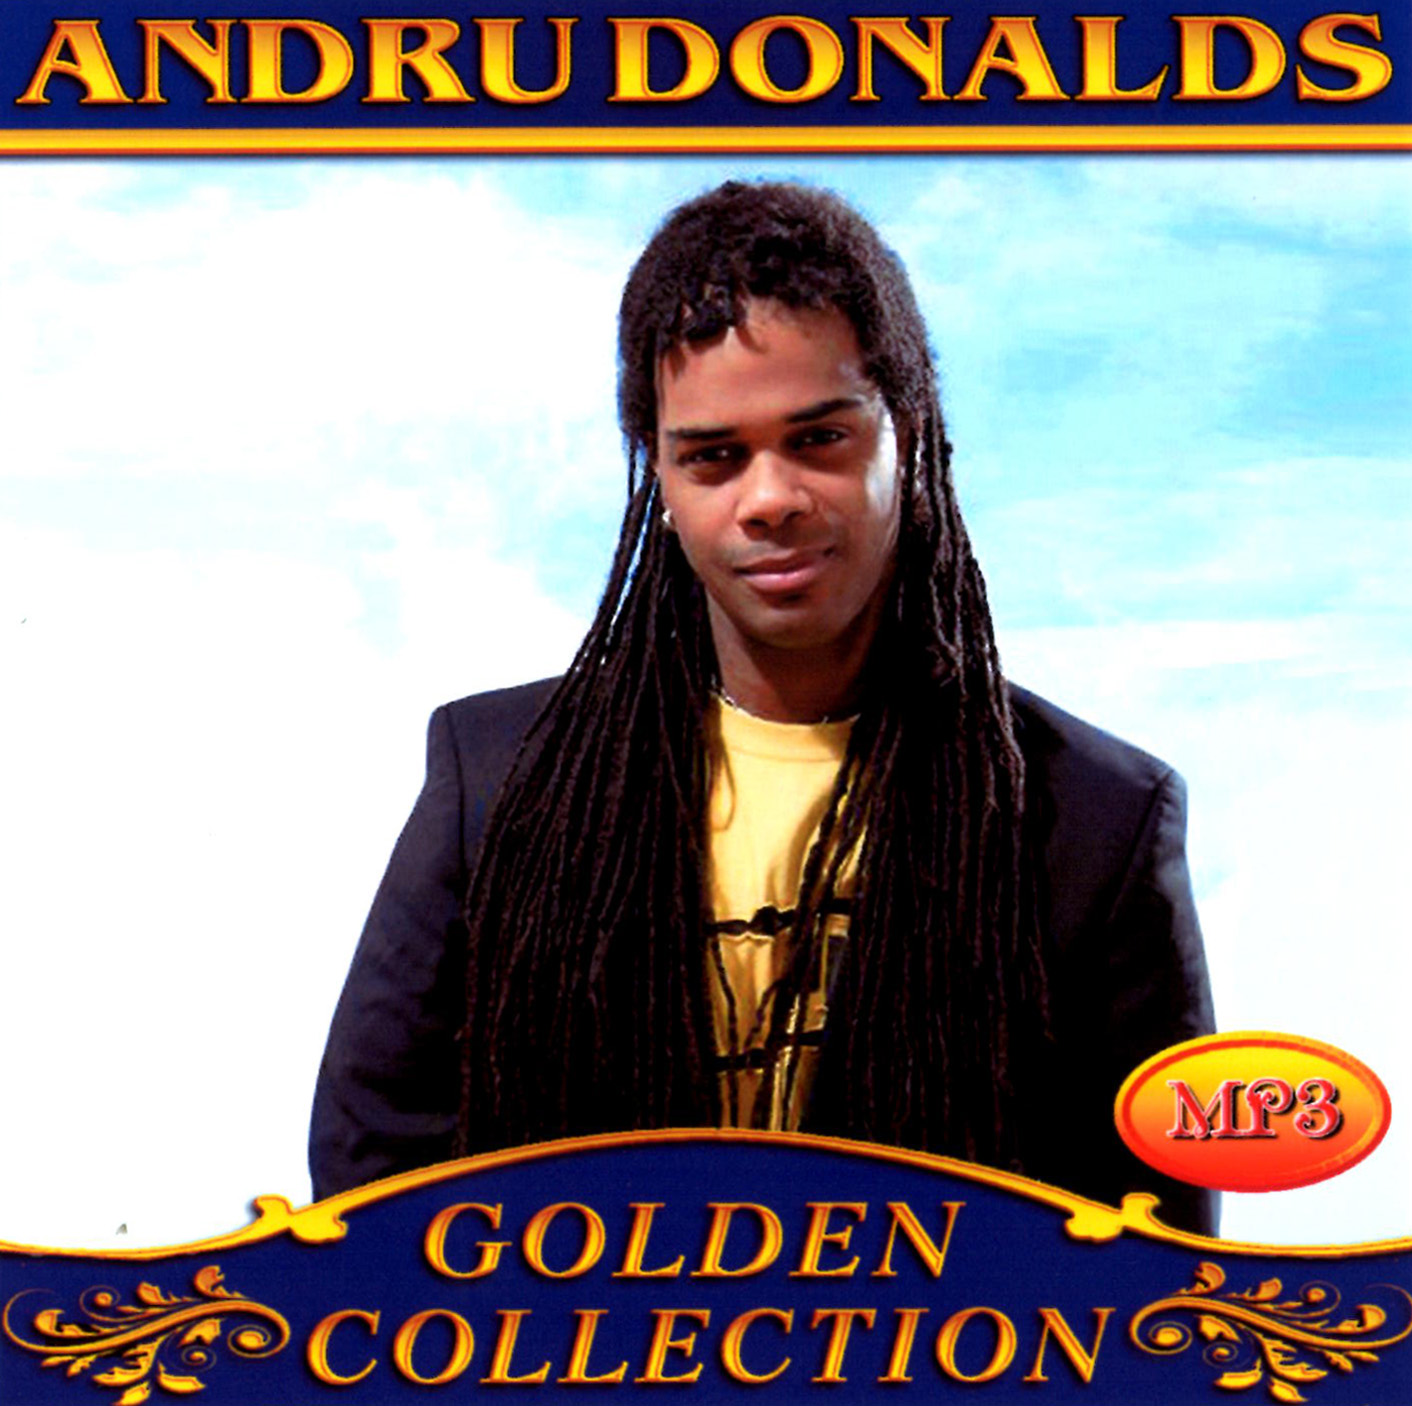 Andru Donalds [mp3]